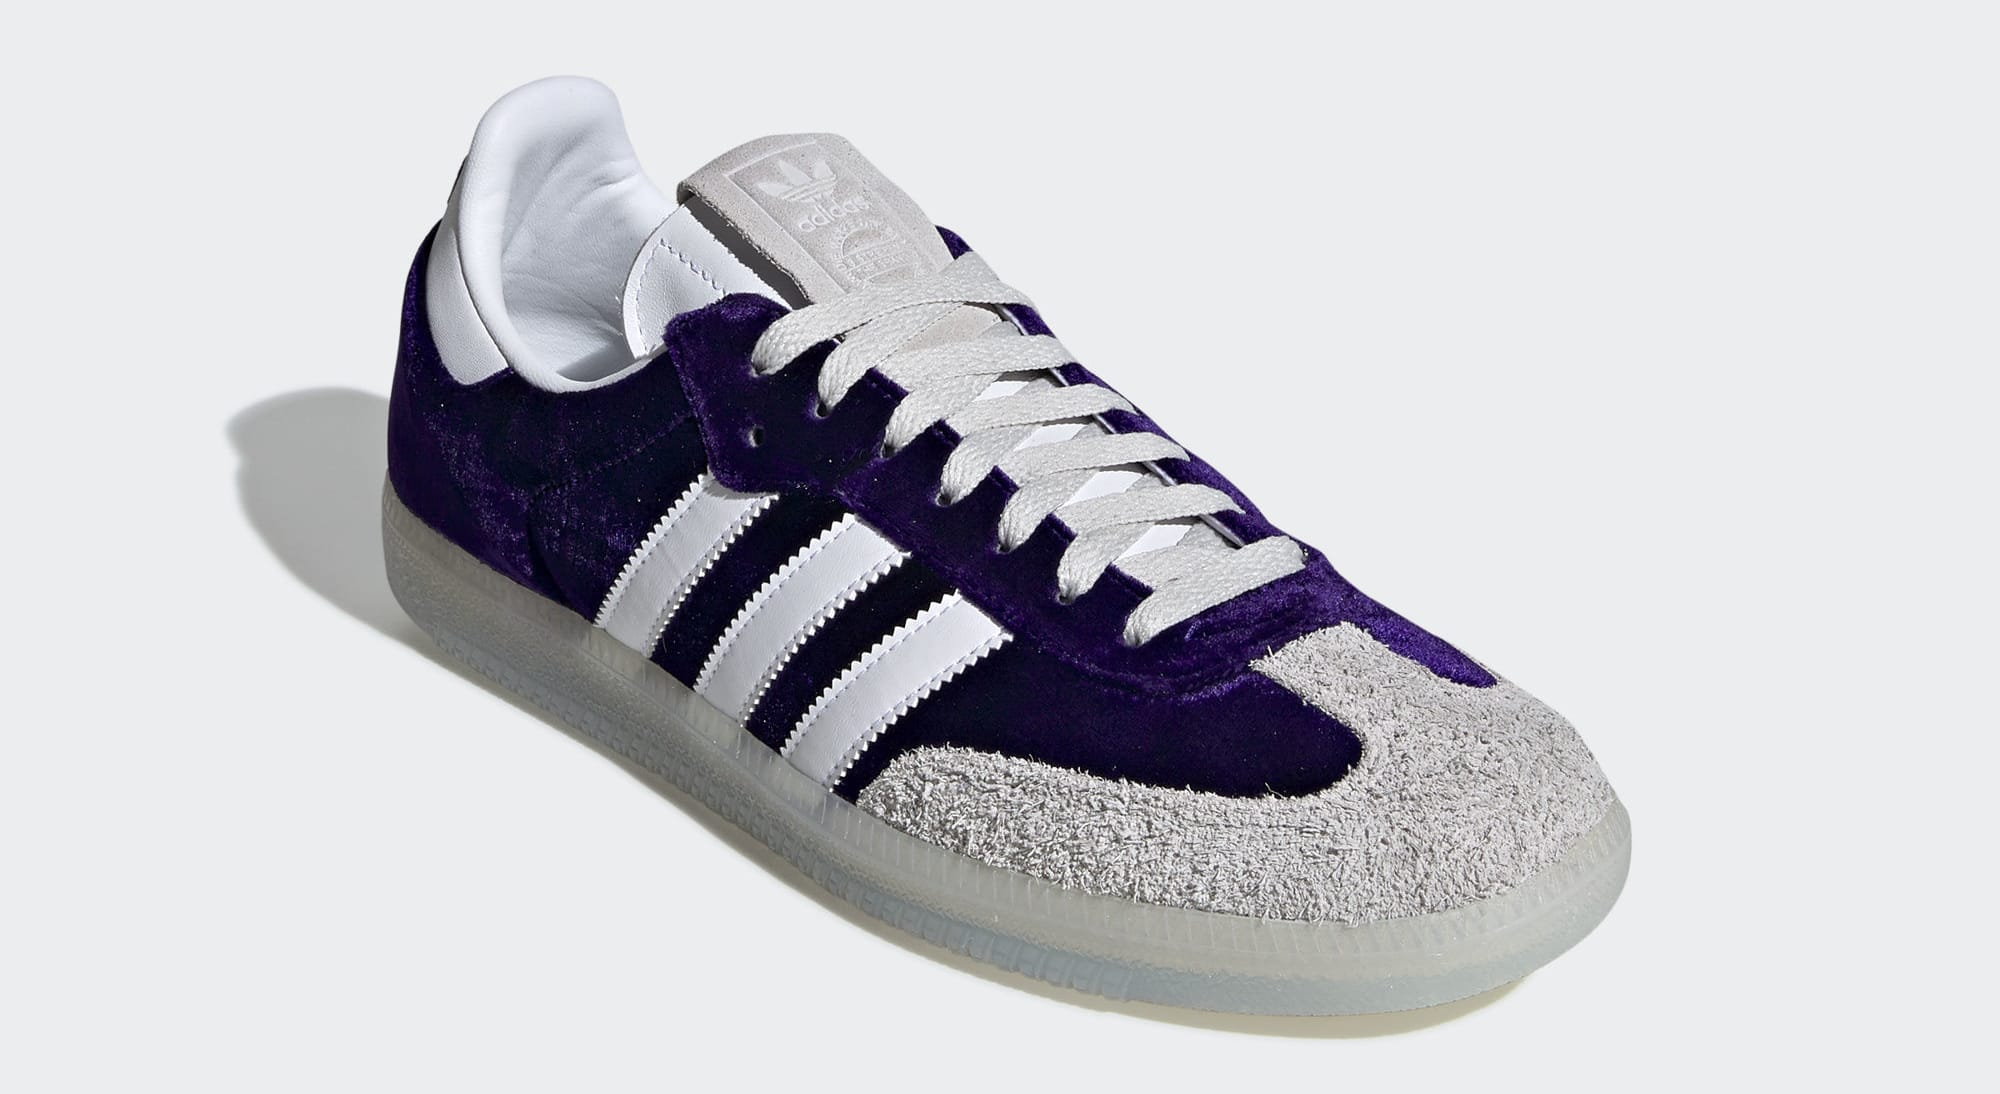 Adidas Samba 'Purple Haze' DB3011 (Toe)